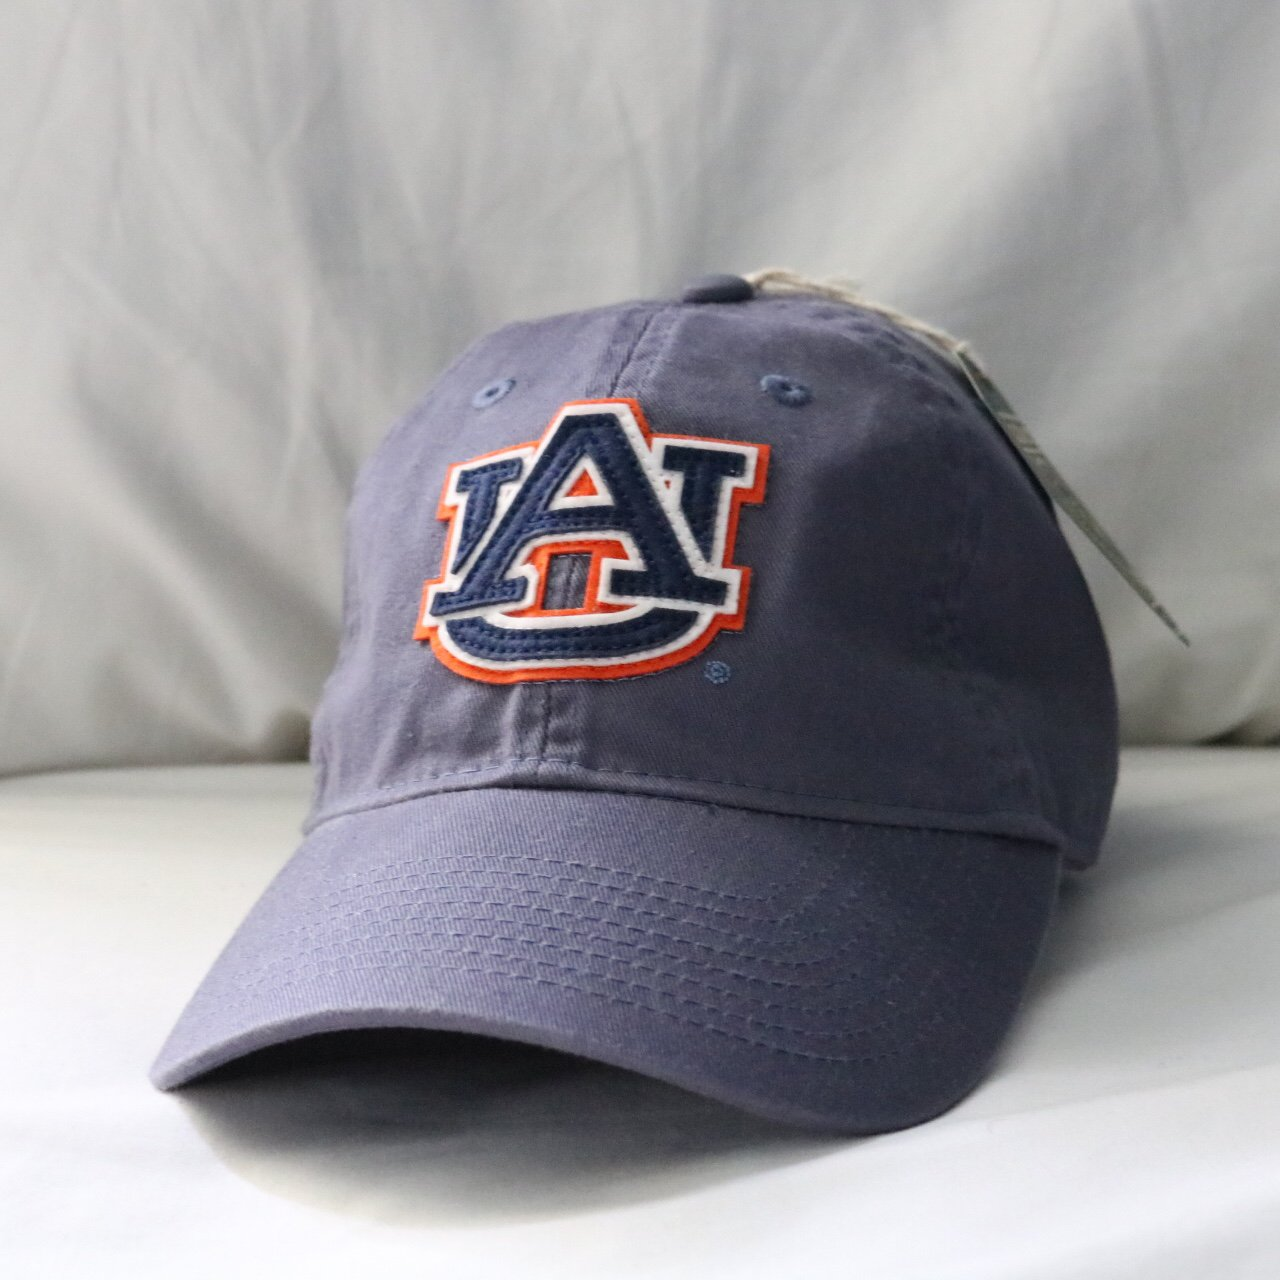 2adf02916cf Denim style Auburn Tigers cap Adjustable NEW AND NEVER WORN - Depop